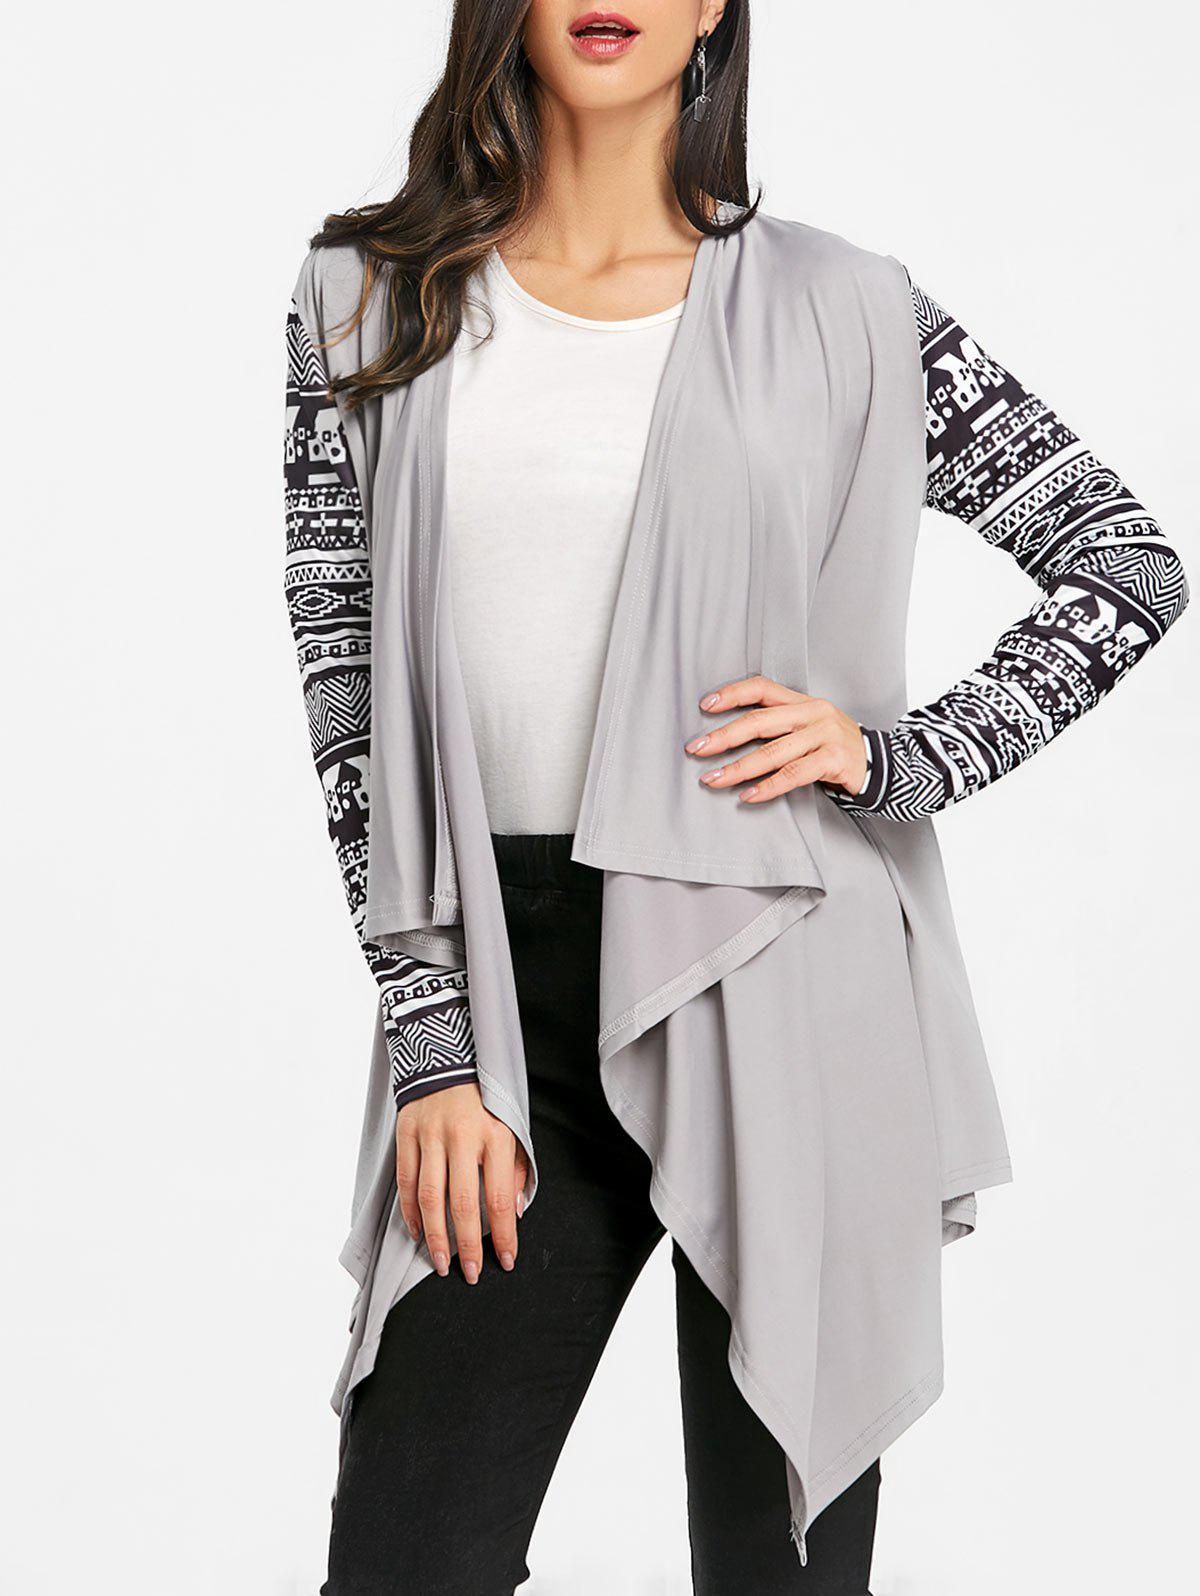 Tribal Print Sleeve Draped Asymmetric Cardigan - GRAY L